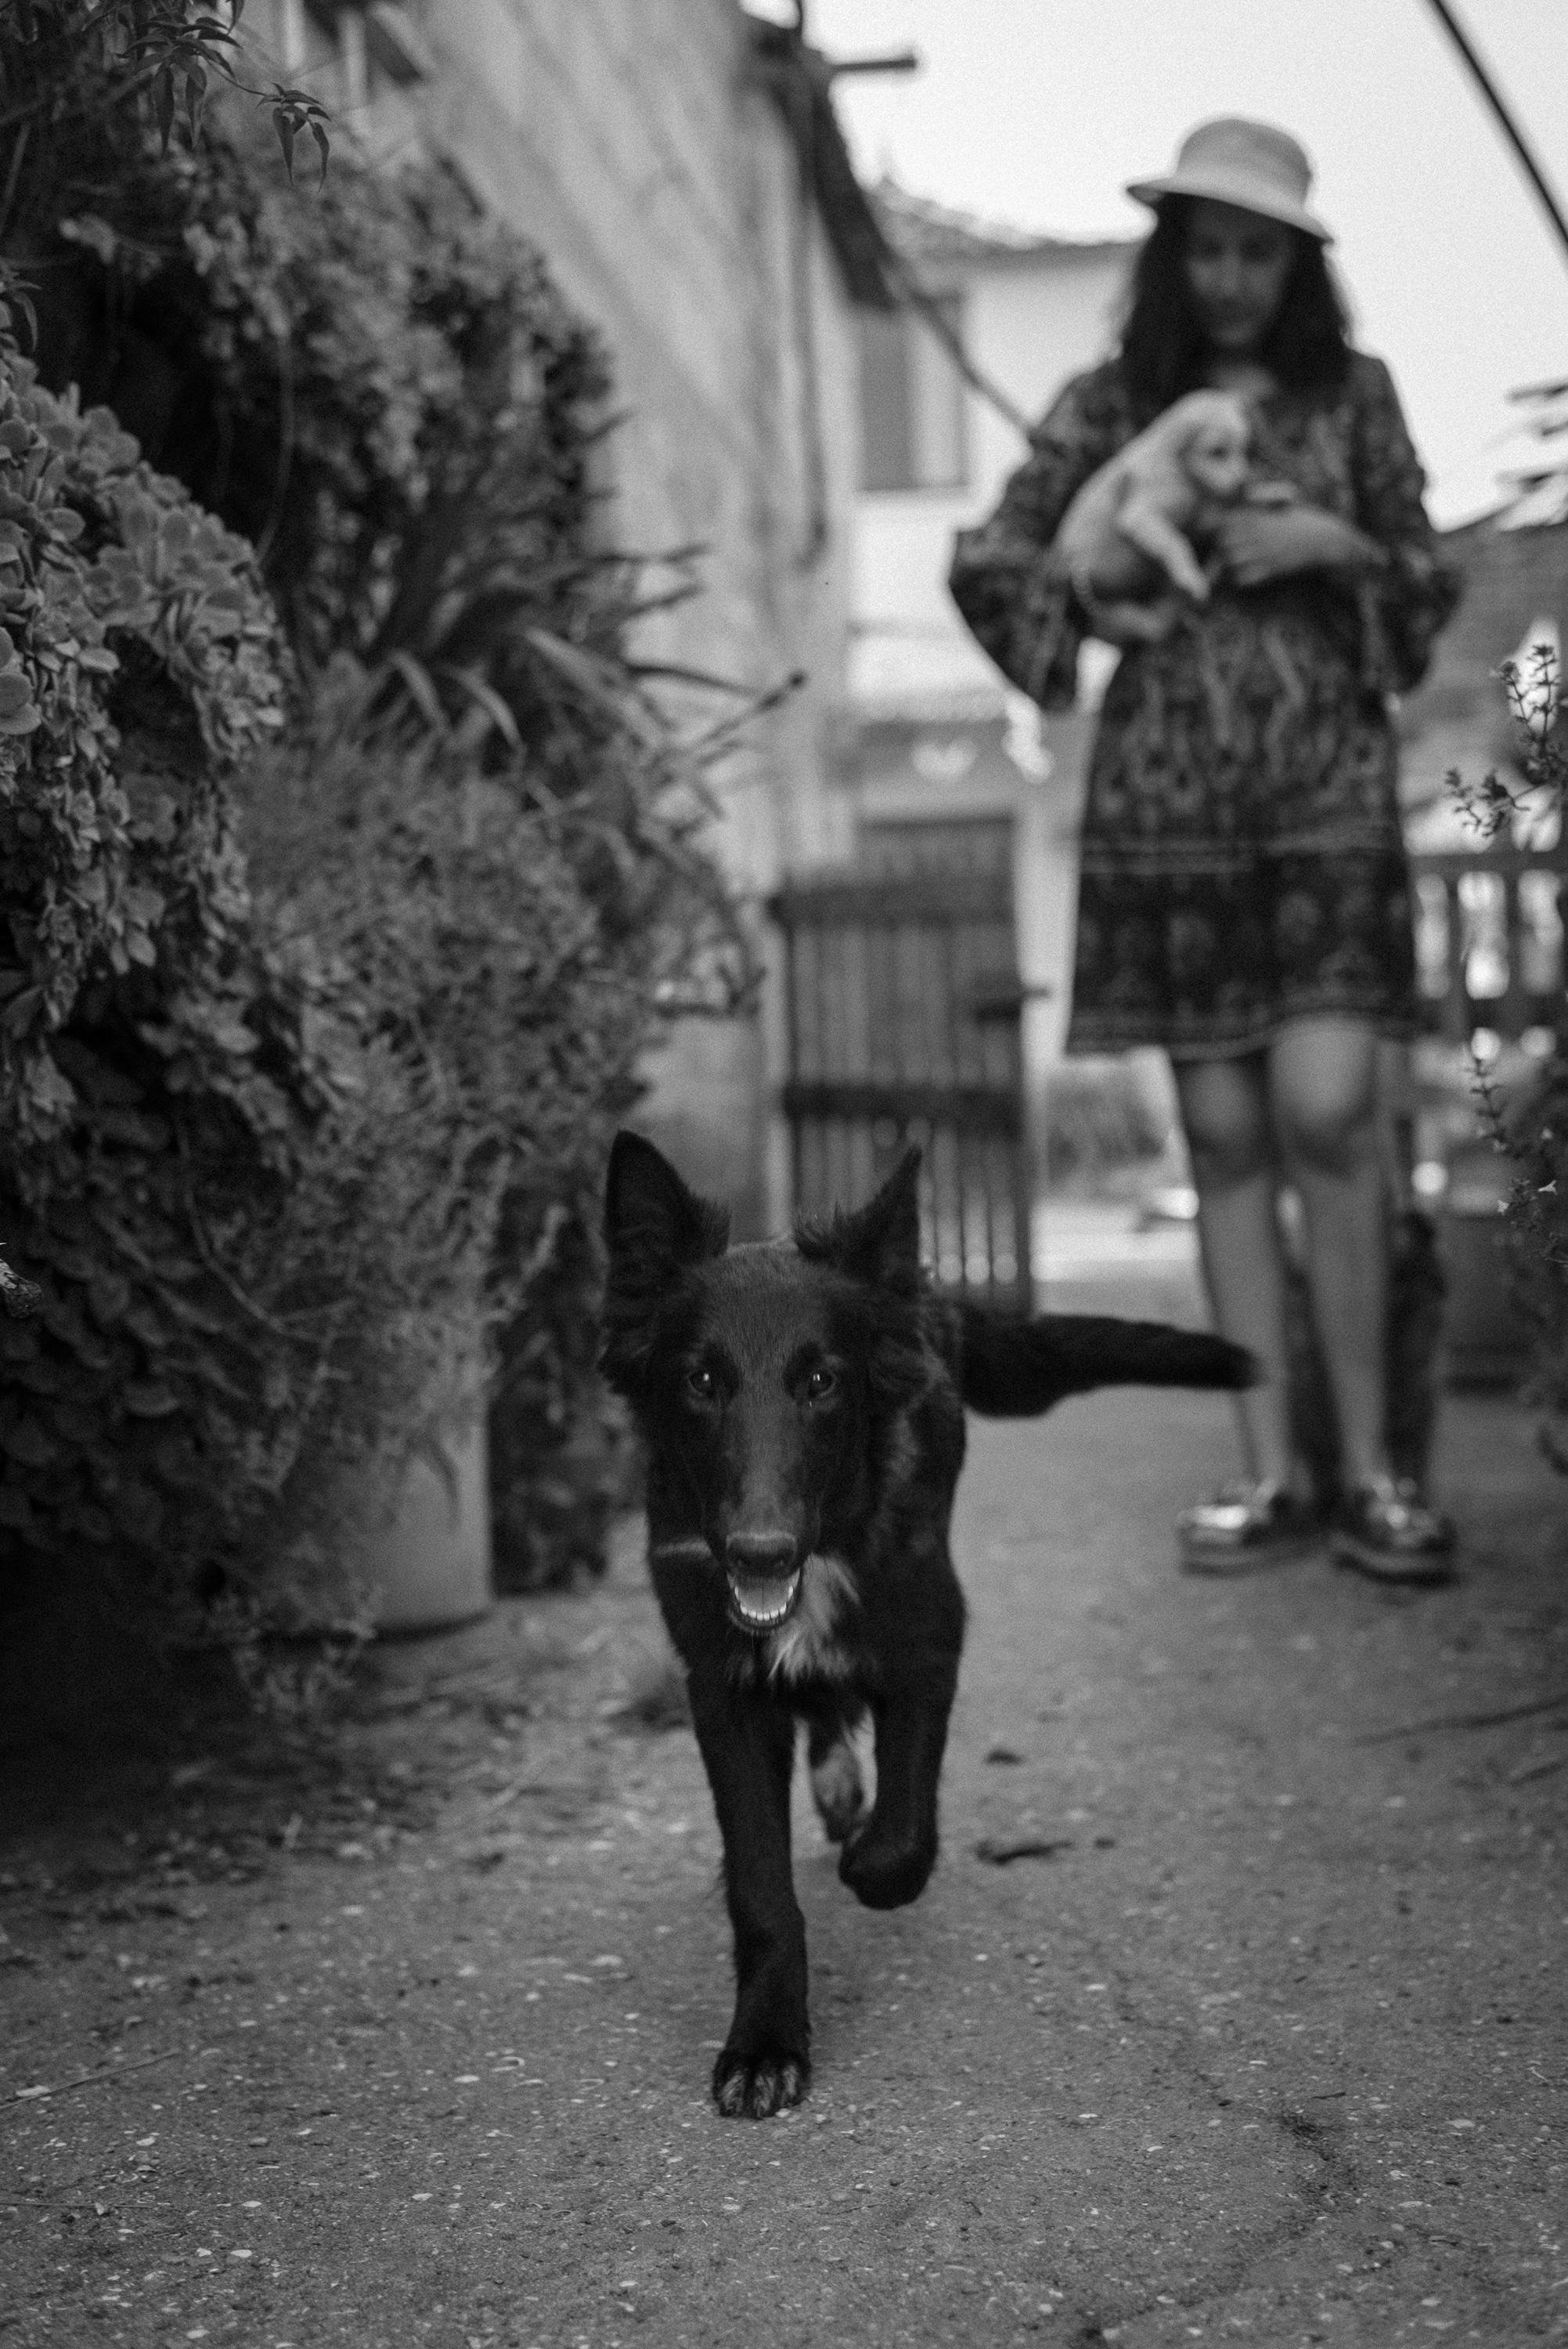 at farm girl and dogs black and white photograph